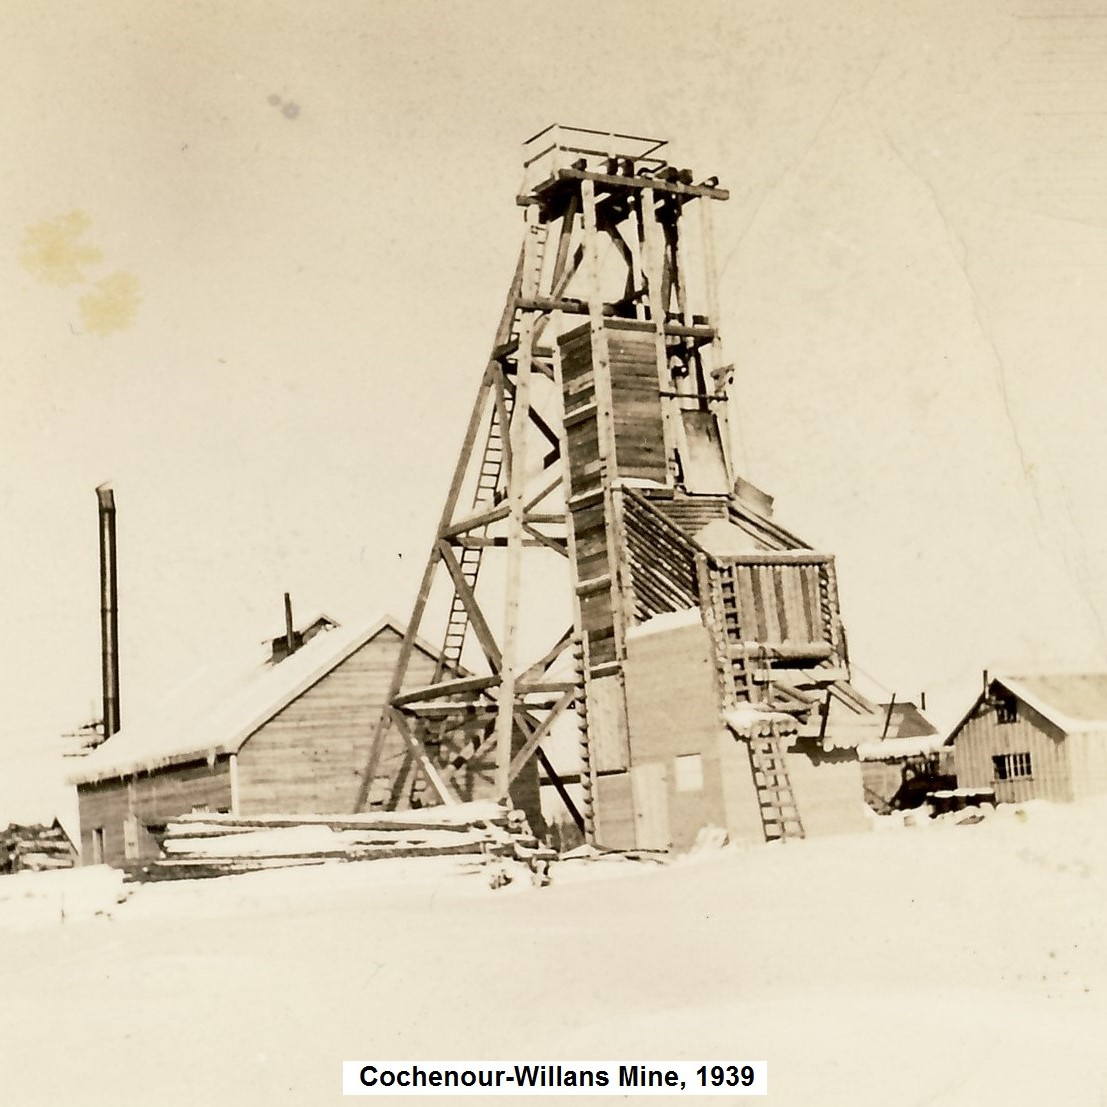 Cochenour-Willans Mine, Red Lake - Cochenour